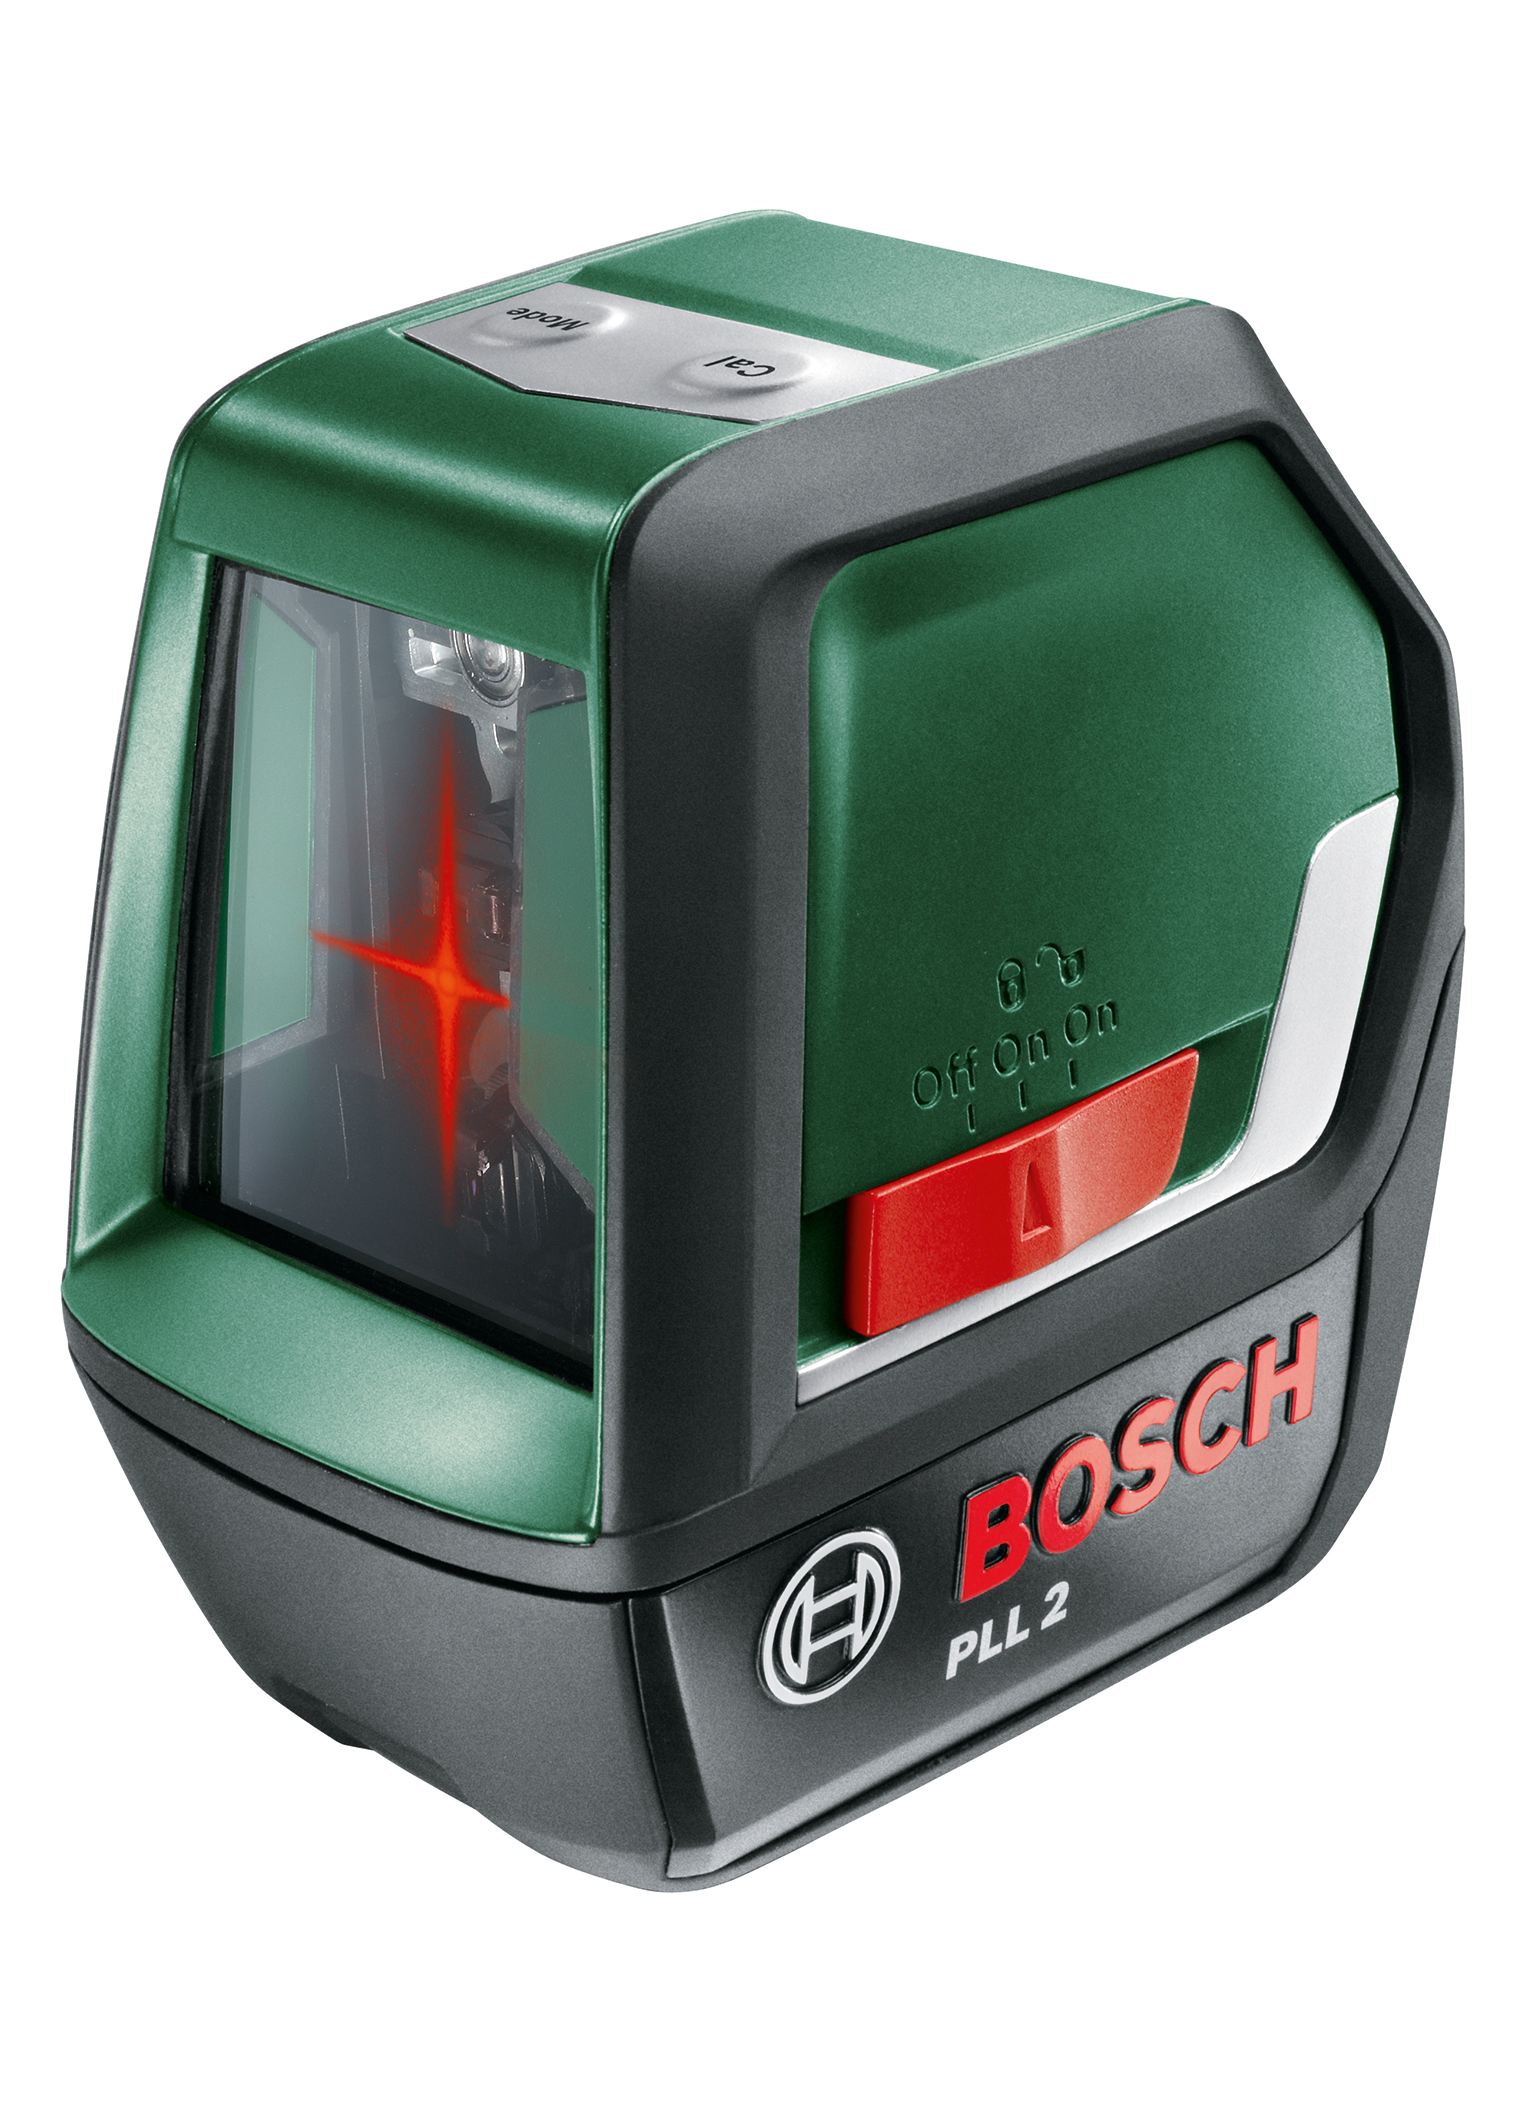 the pll 2 cross line laser from bosch - bosch media service